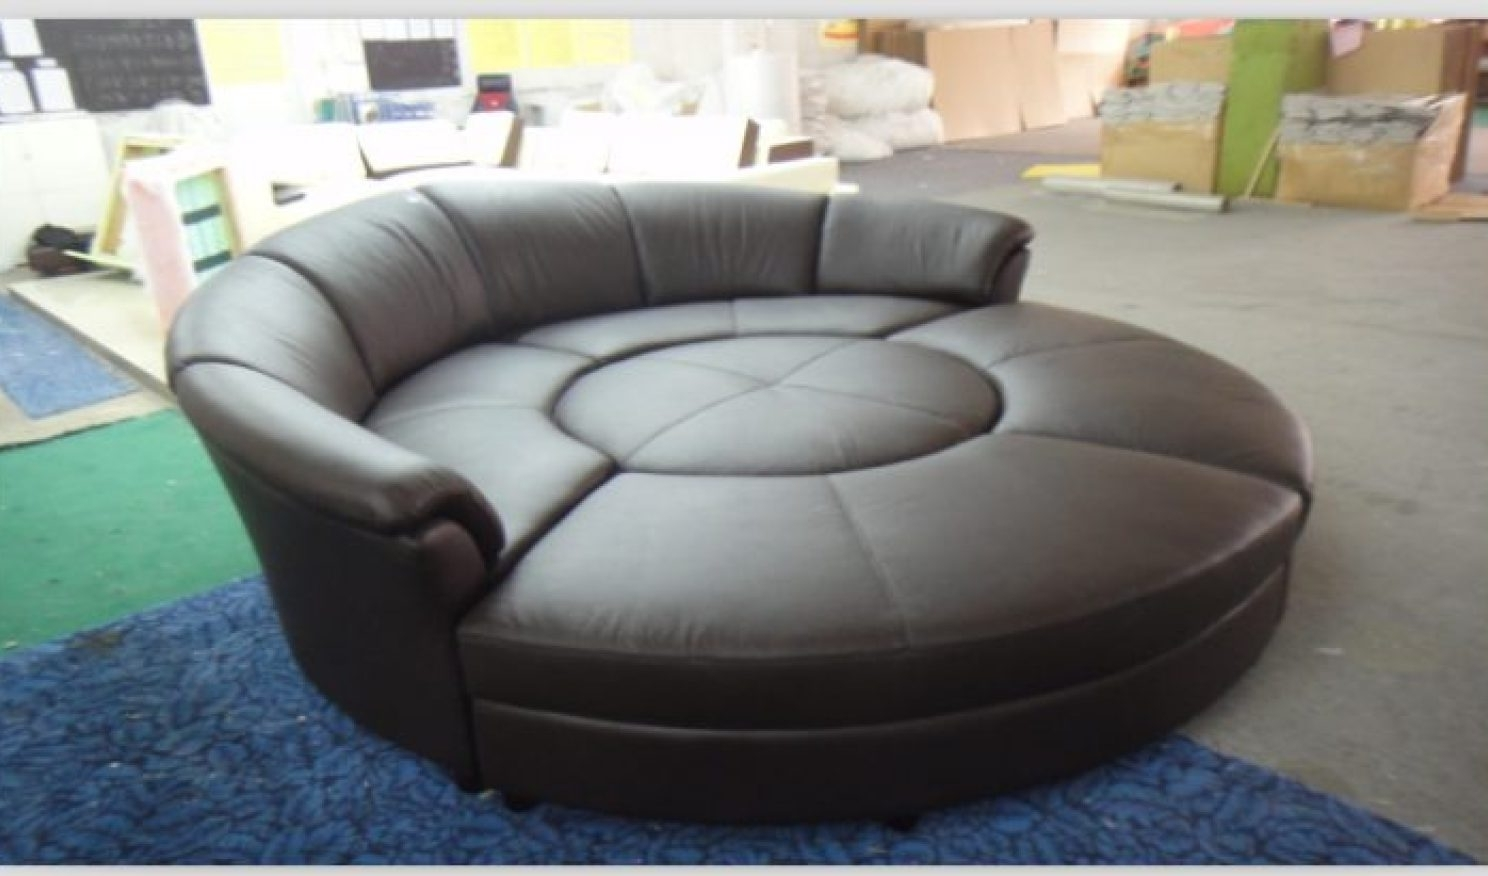 Spinning Sofa Chairs With Latest Sofa : Round Spinning Sofa Chair Round Sofa Chair Dfs Giant Round (View 9 of 20)